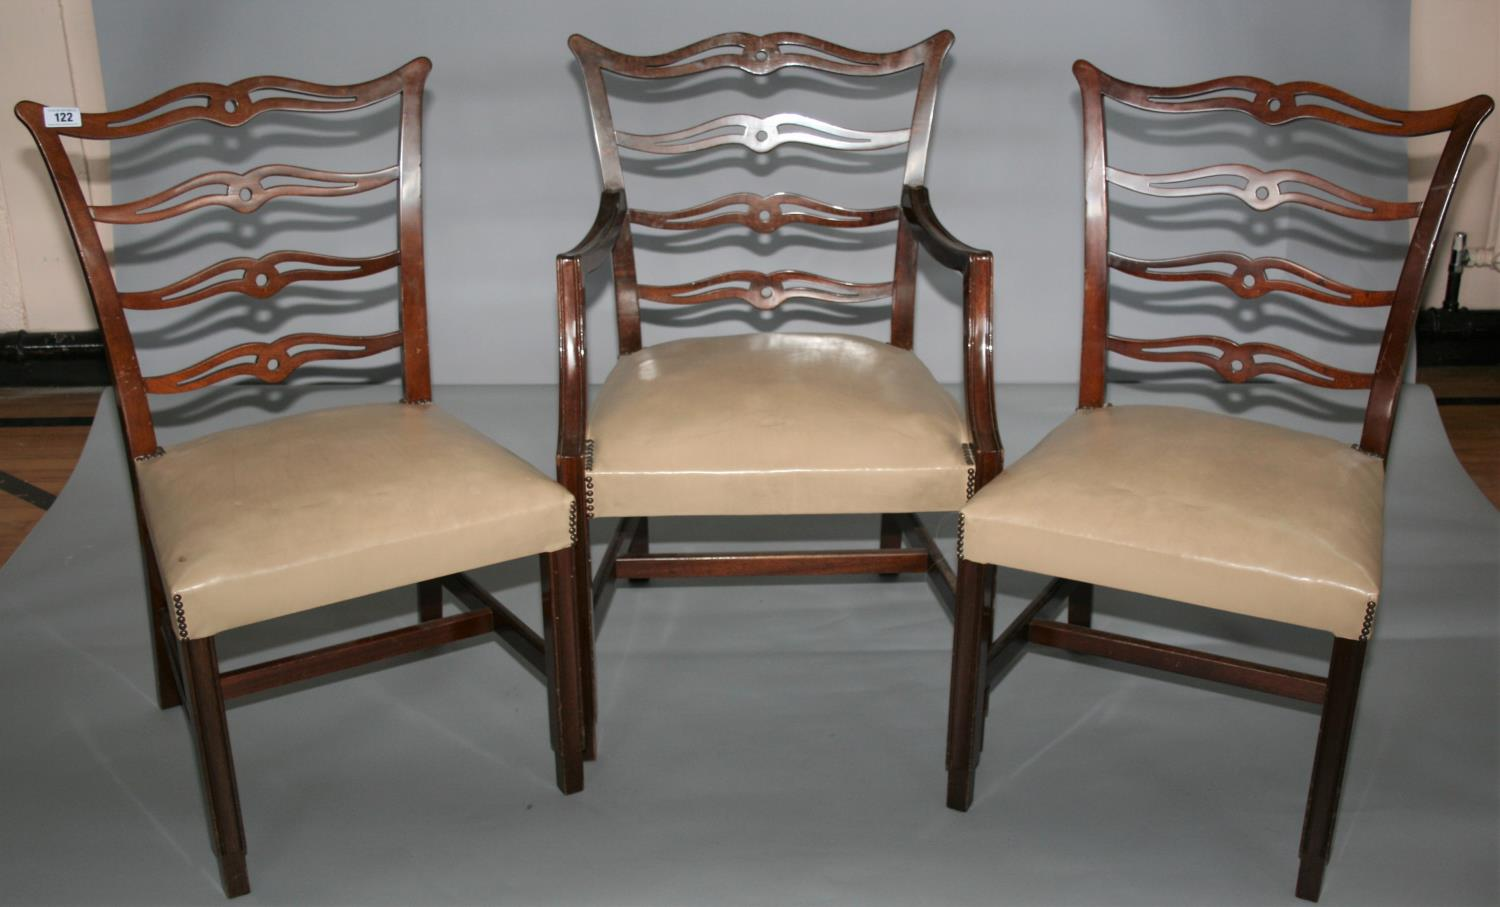 Set of three Hepplewhite design dining chairs and writing table with two drawers 120W x 75H x 67D.